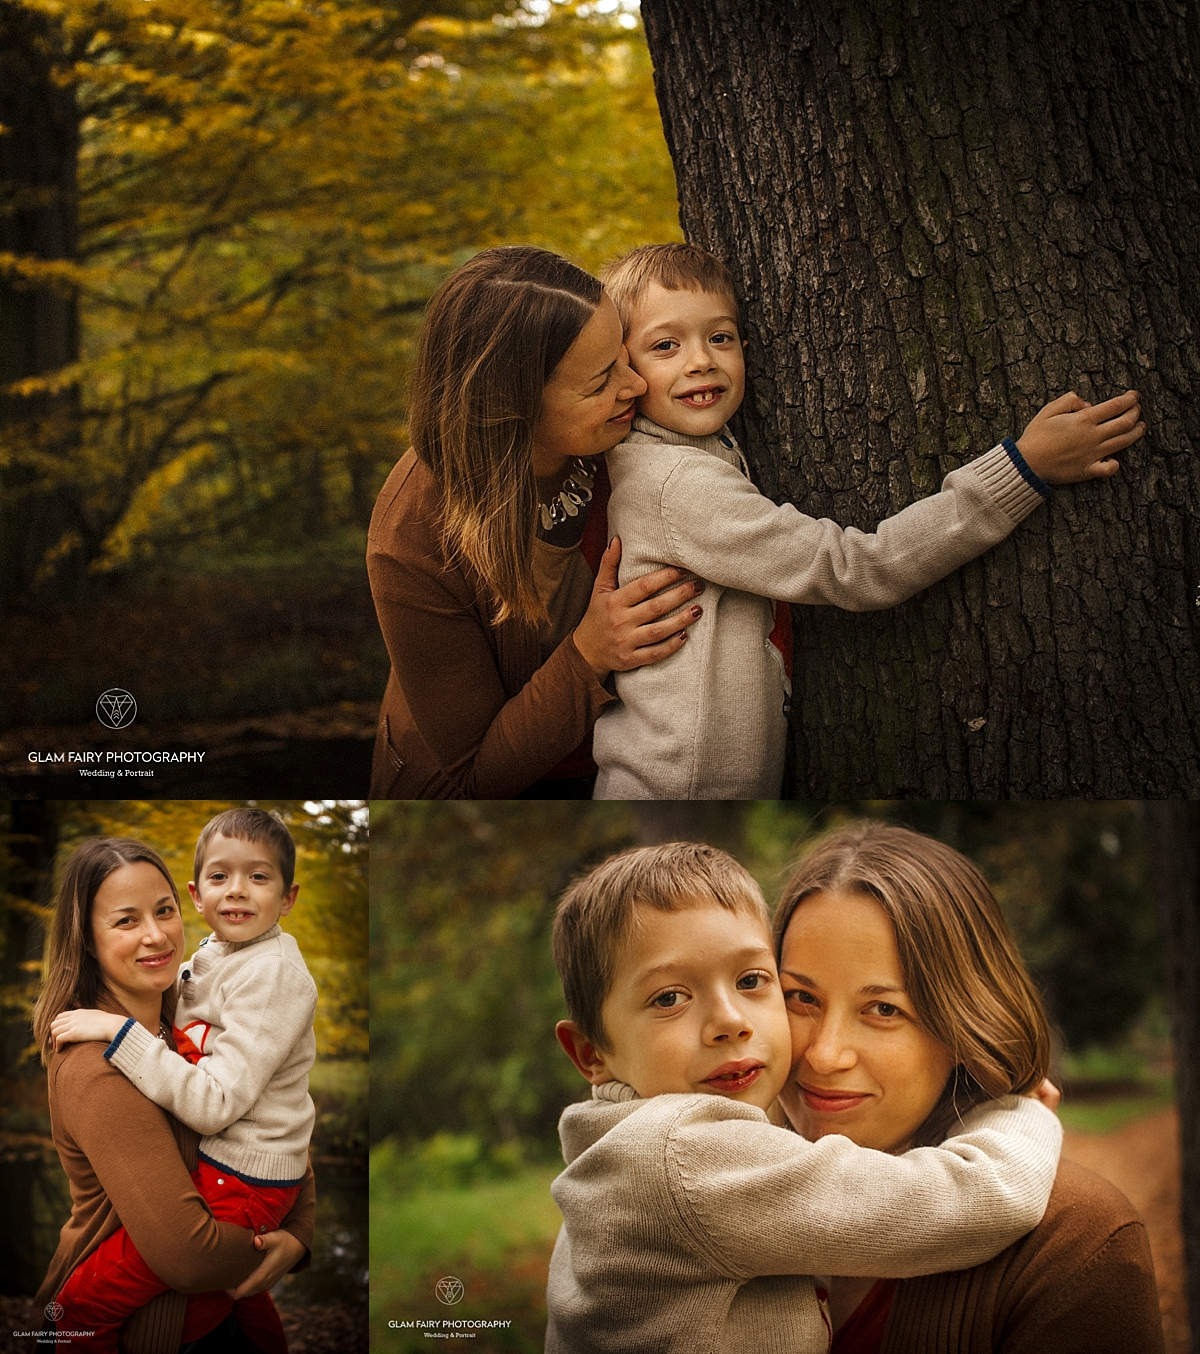 GlamFairyPhotography-mini-session-en-famille-a-vincennes-cecile_0006